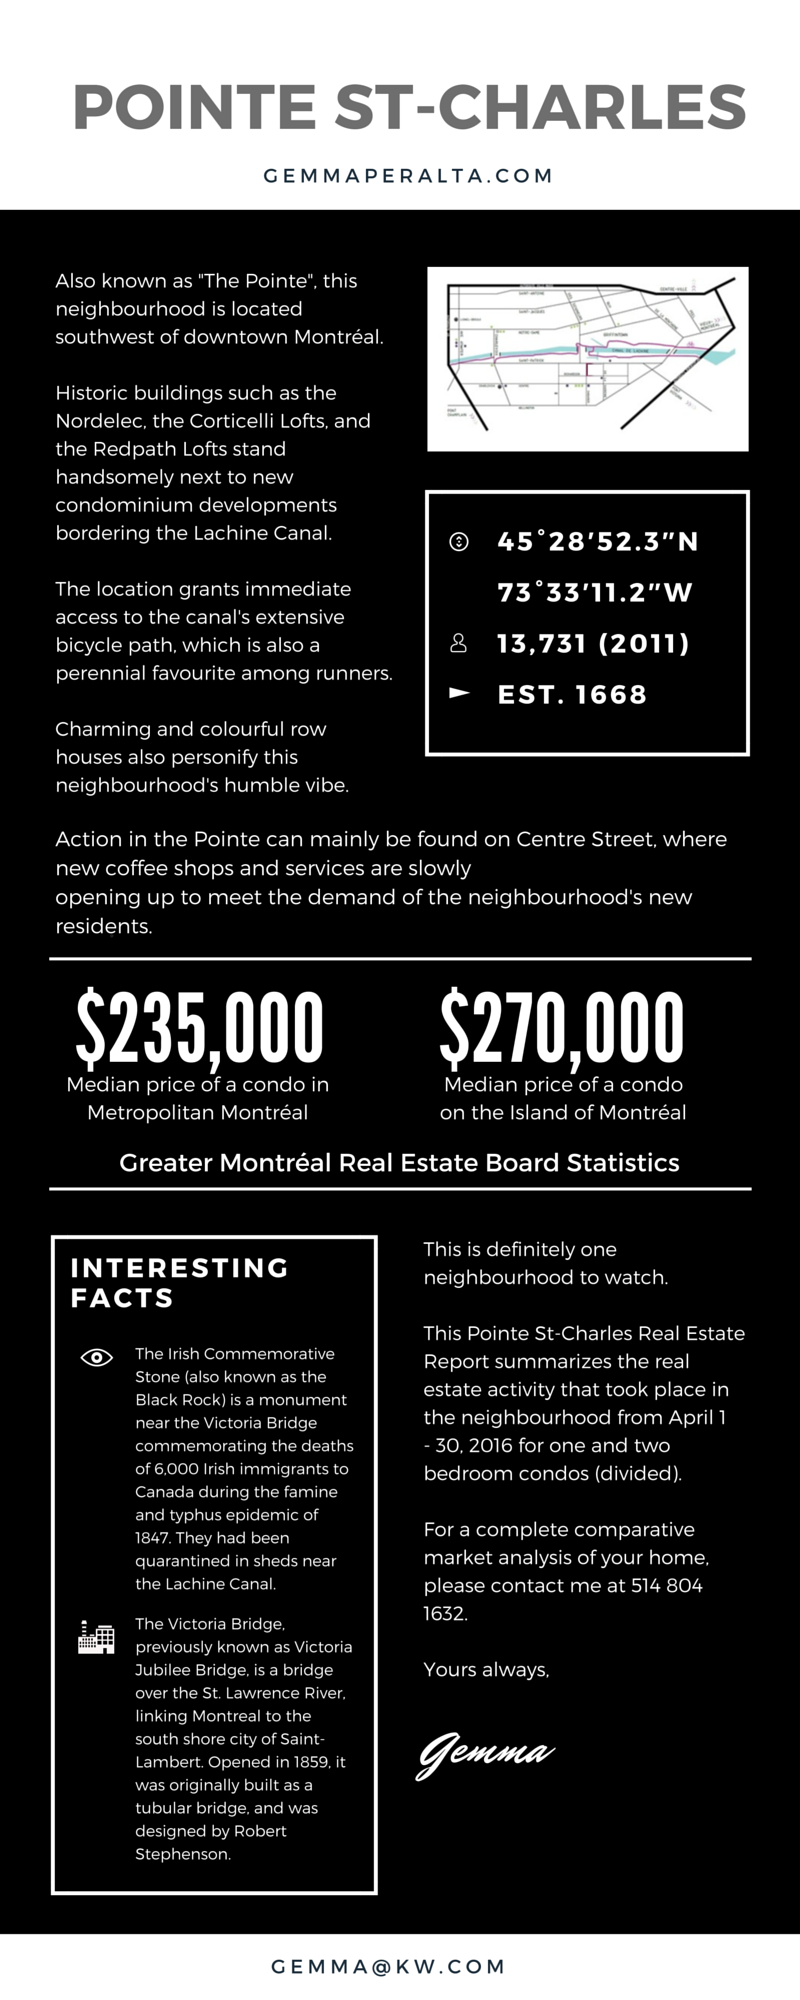 Pointe St-Charles Real Estate Report April 2016 01